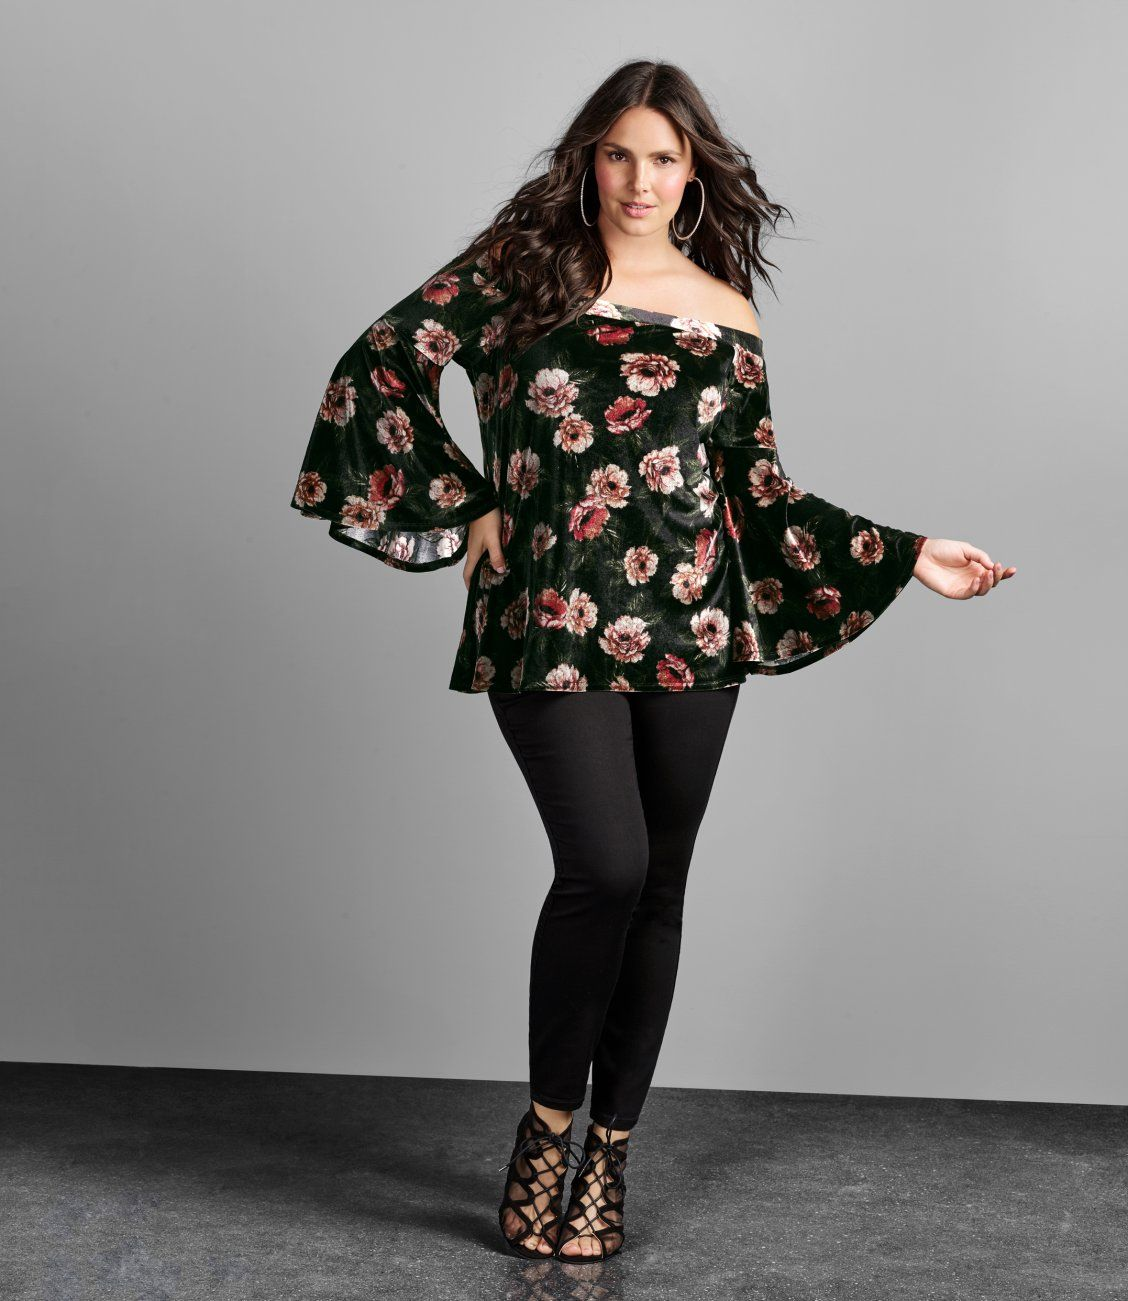 734fbf8e5d386 Velvet off-the shoulder top is a mist have! Shop everything new at ...